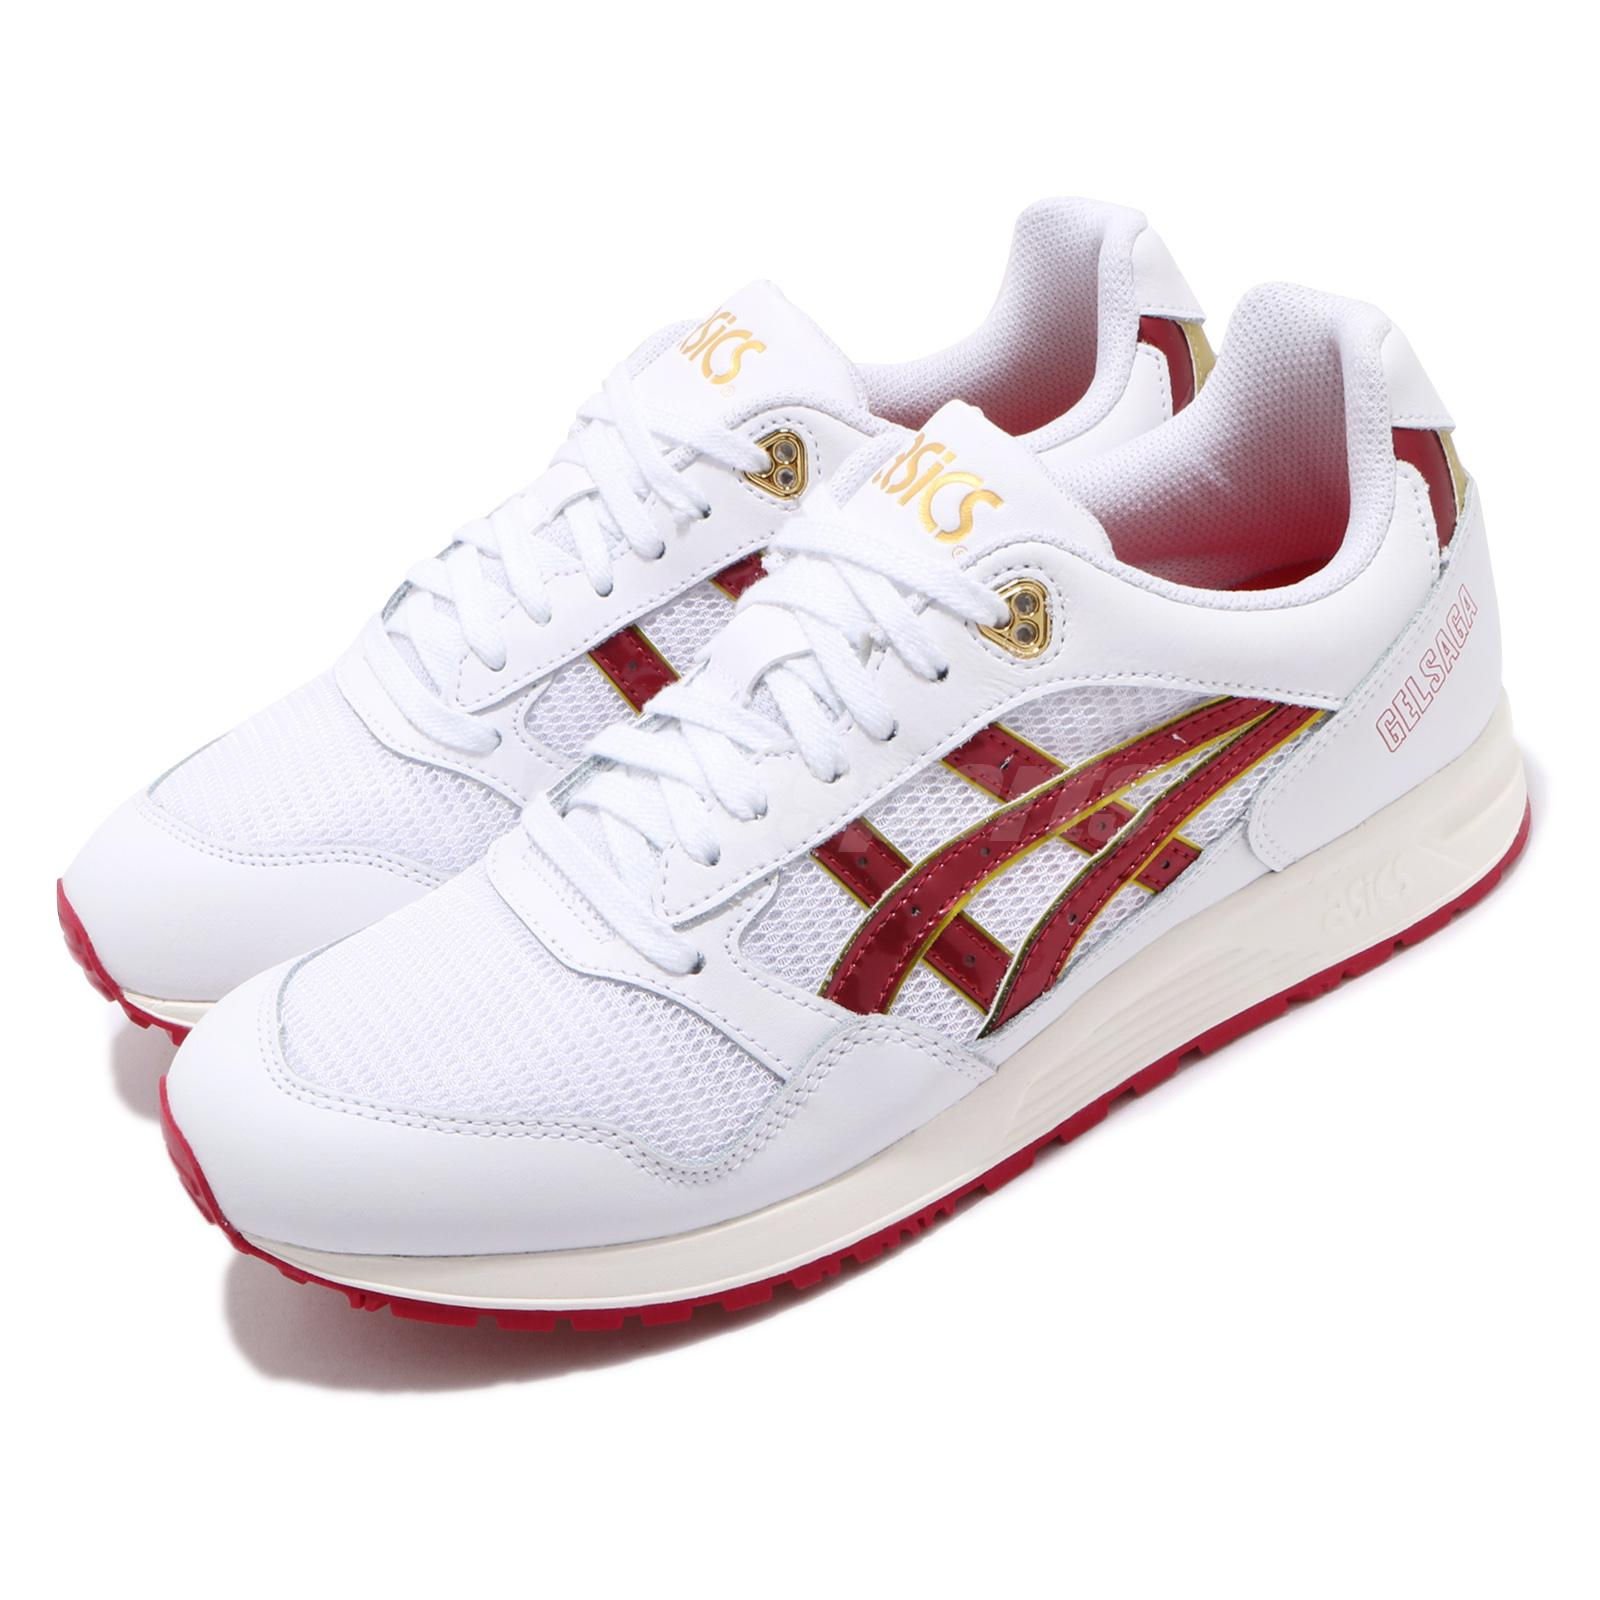 Details about Asics Tiger Gel-SAGA White Speed Red Gold Mens Womens Running  Shoes 1191A231-100